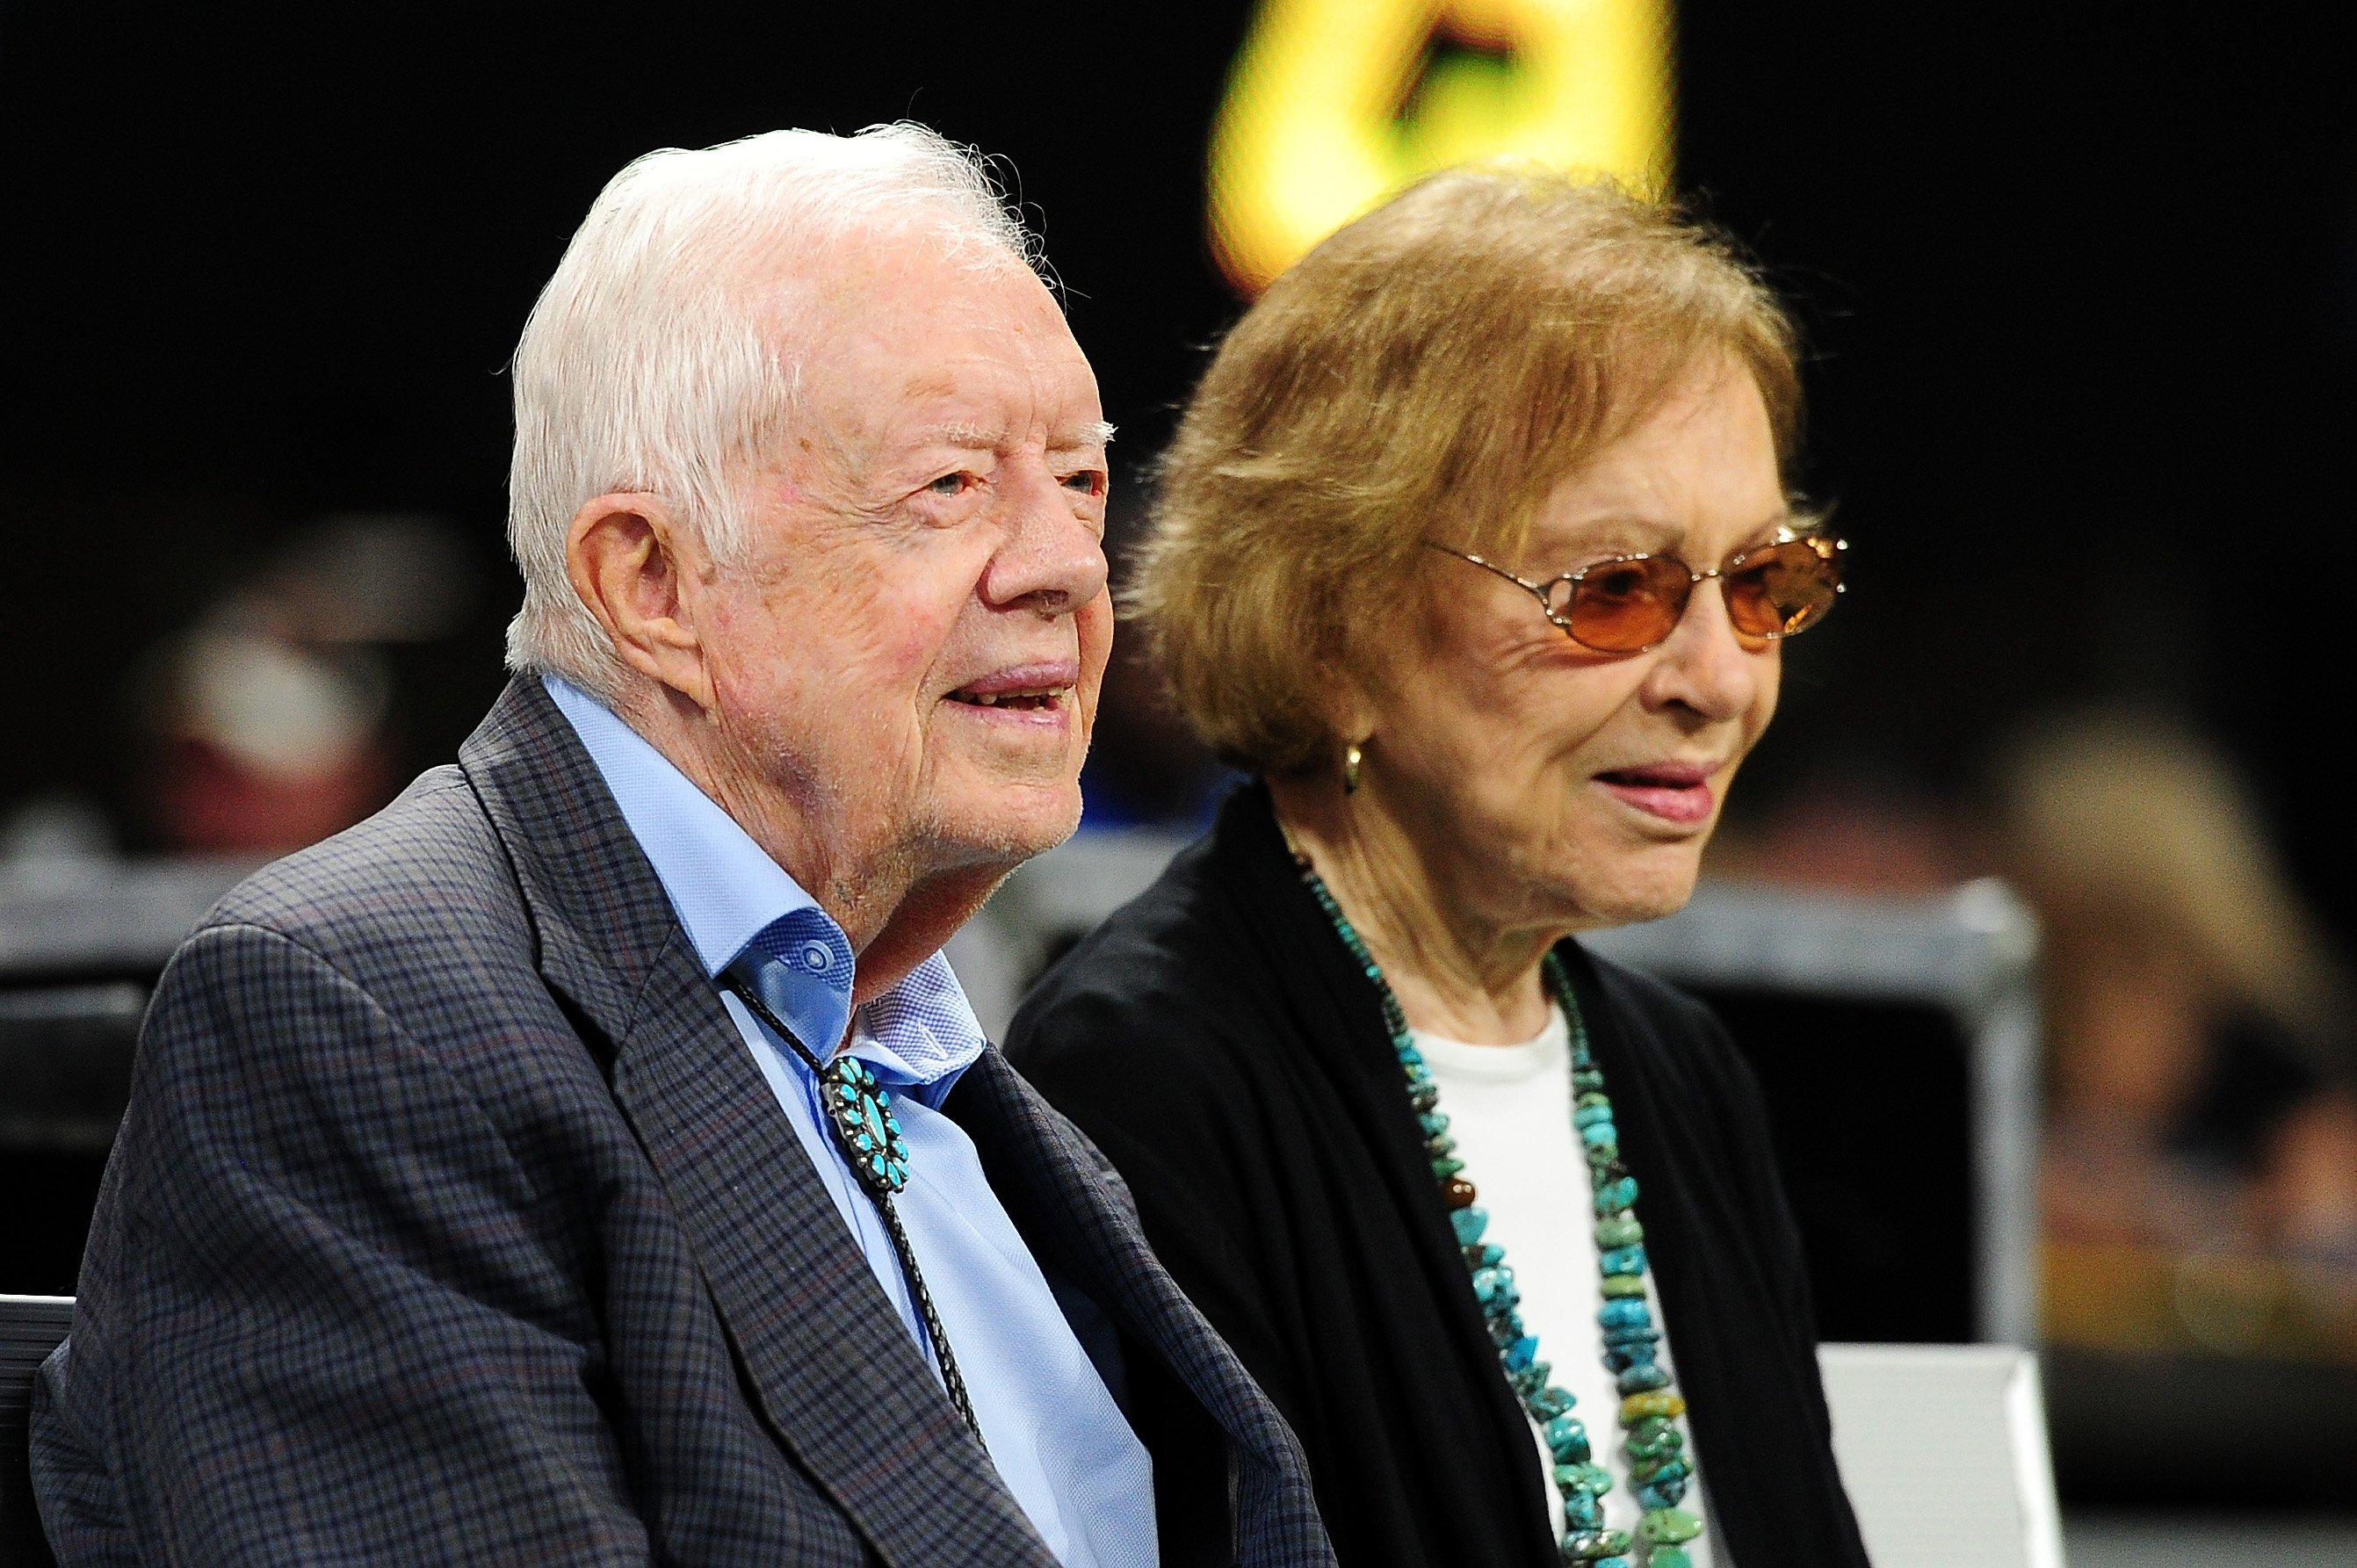 Former president Jimmy Carter and his wife Rosalynn prior to the game between the Atlanta Falcons and the Cincinnati Bengals at Mercedes-Benz Stadium on September 30, 2018, in Atlanta, Georgia. | Source: Getty Images.